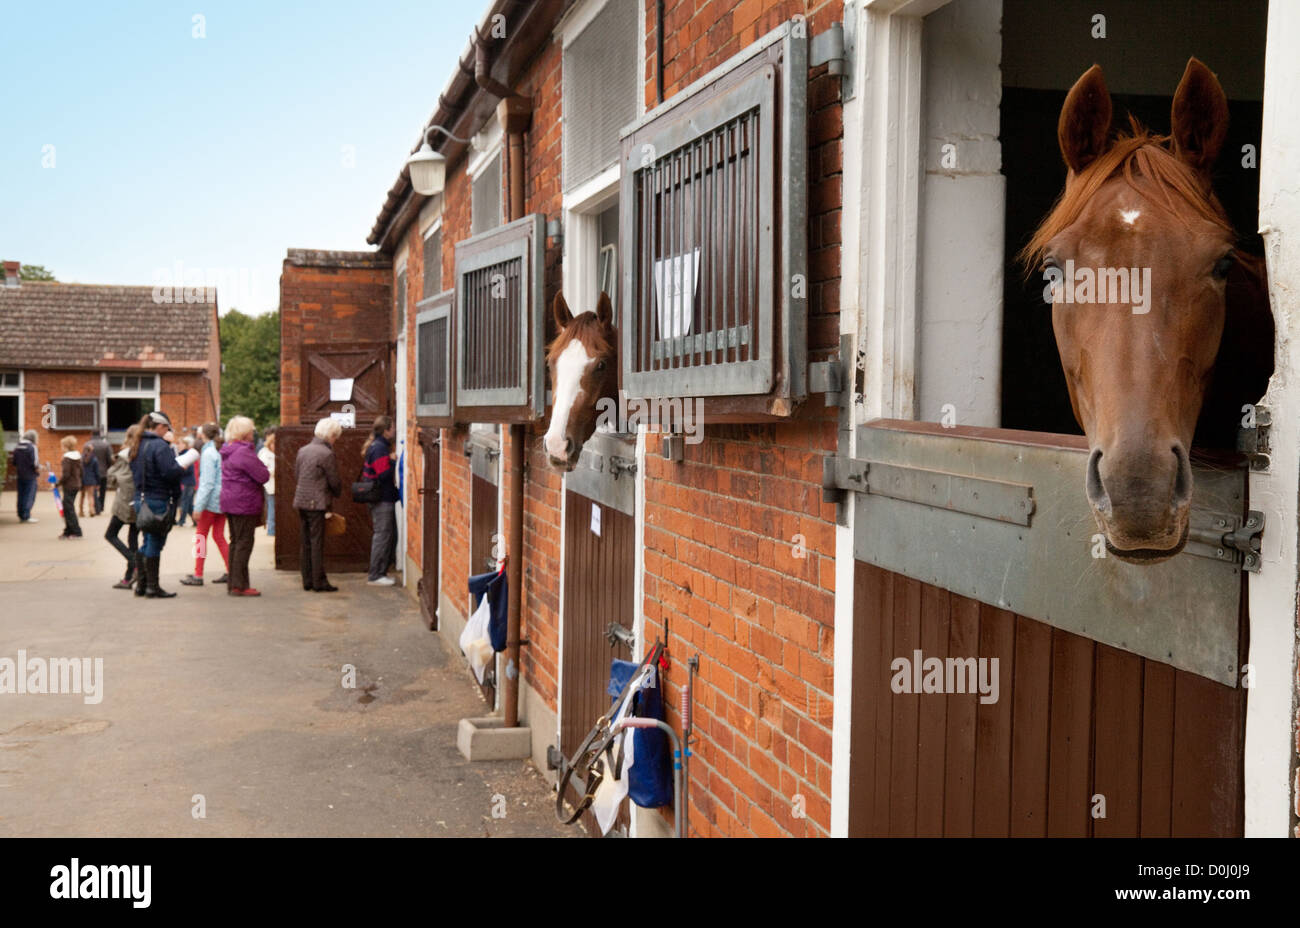 People looking at horses in their stables, Newmarket, Suffolk UK - Stock Image